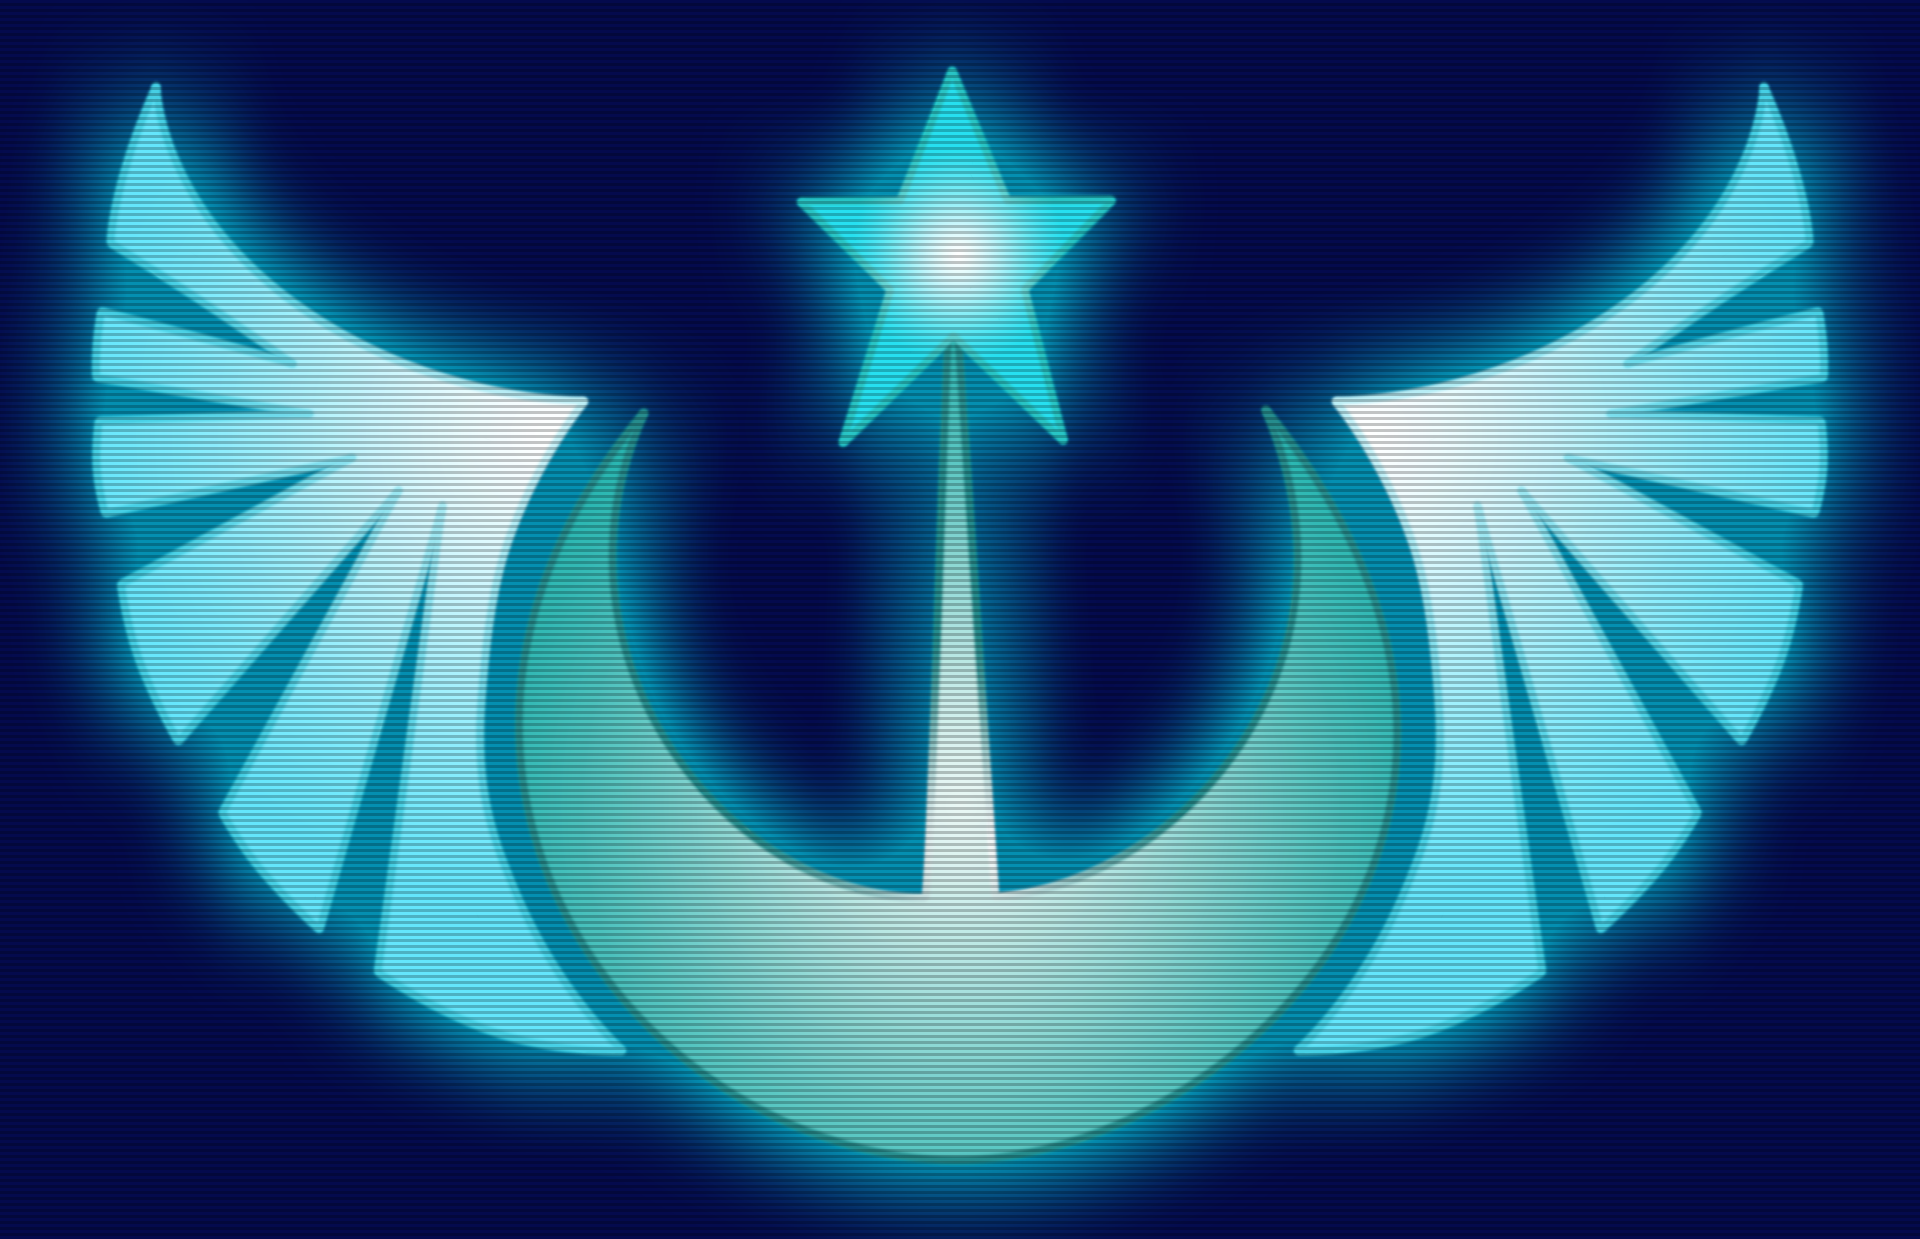 NLR Emblem Wallpaper by Emkay-MLP and SASFalcon